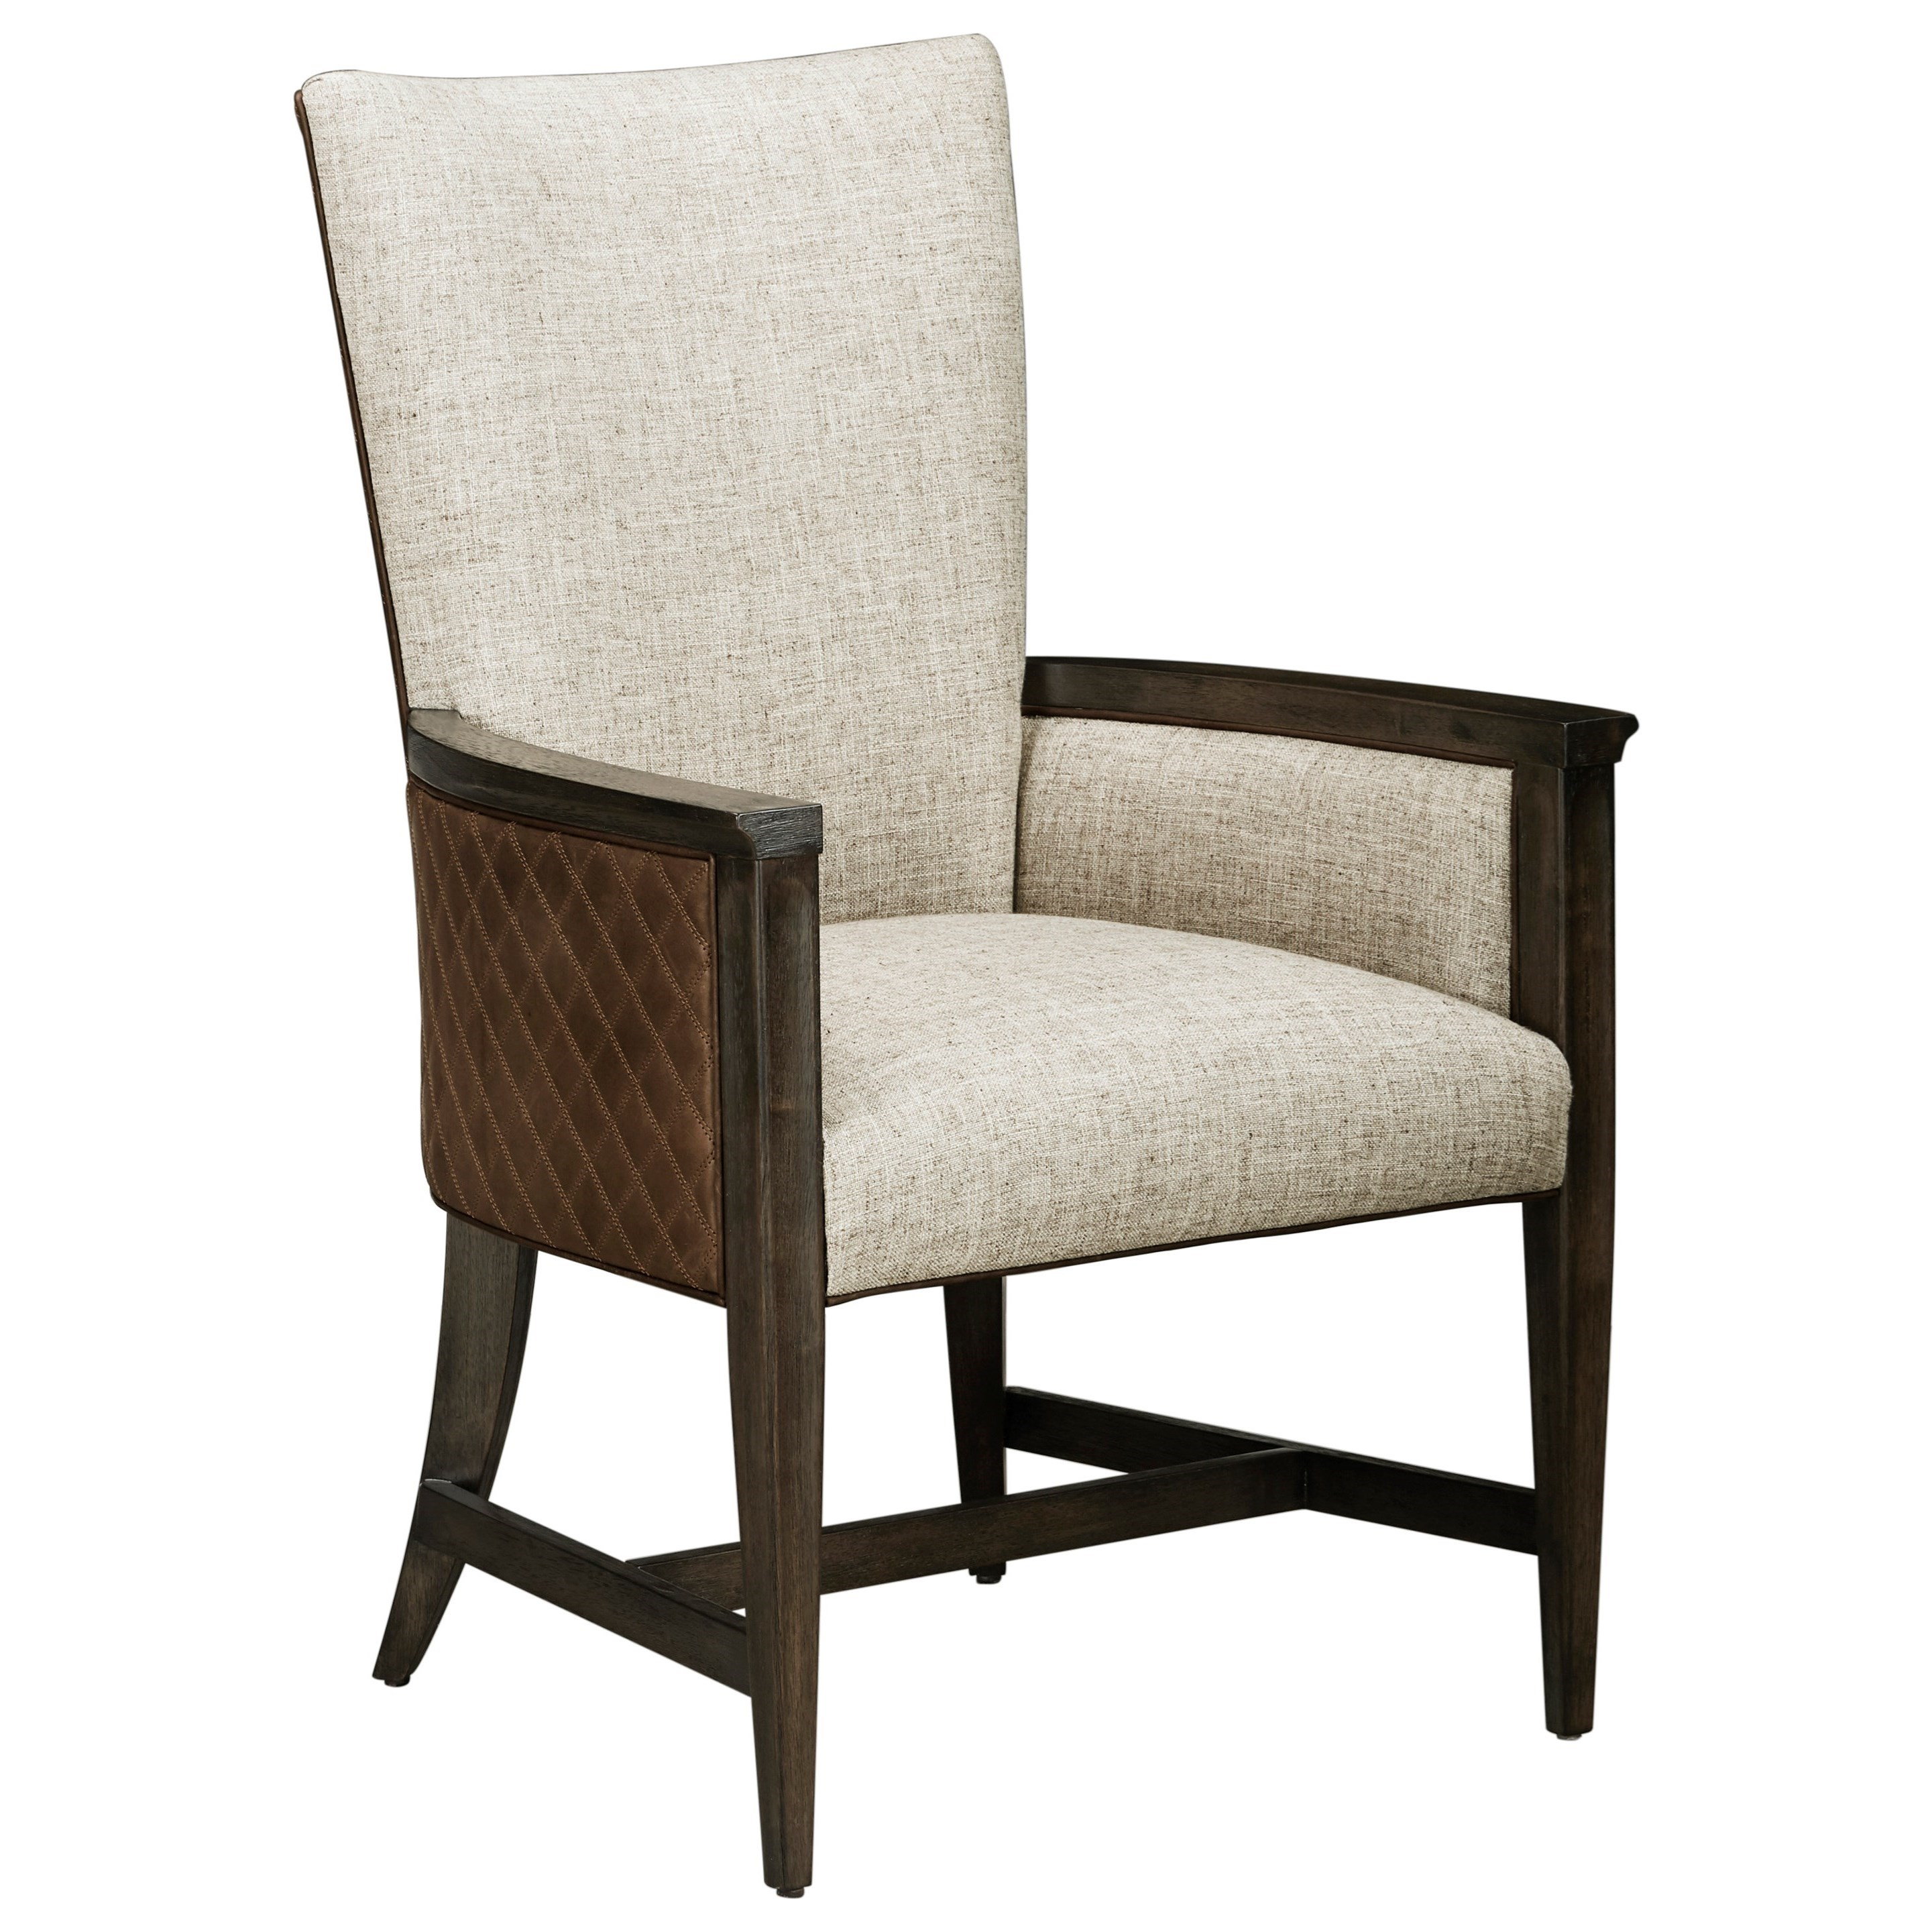 WoodWright Racine Upholstered Arm Chair by A.R.T. Furniture Inc at Darvin Furniture